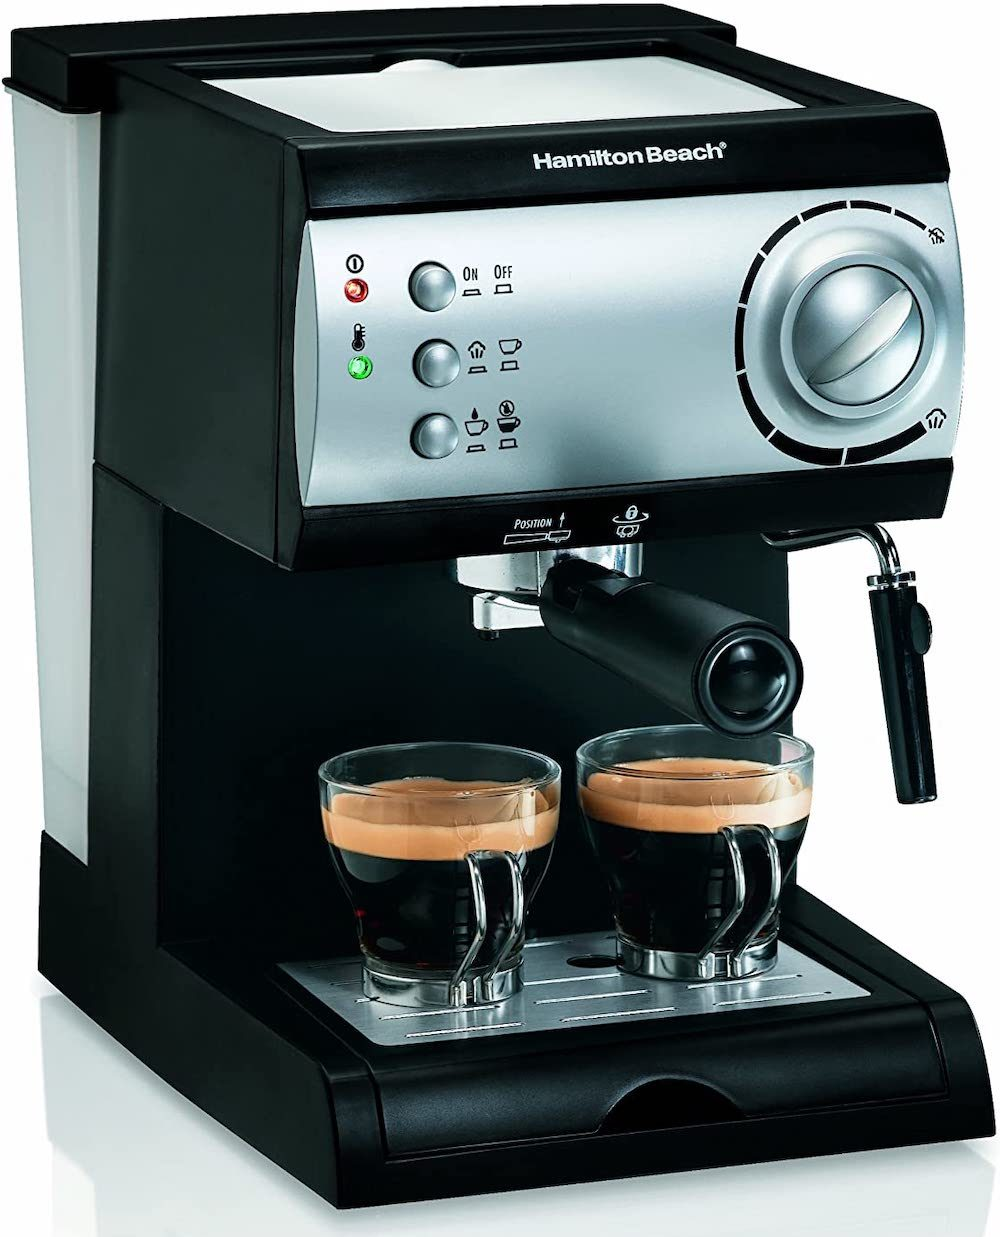 Hamilton Beach 40715 Budget Espresso Machine